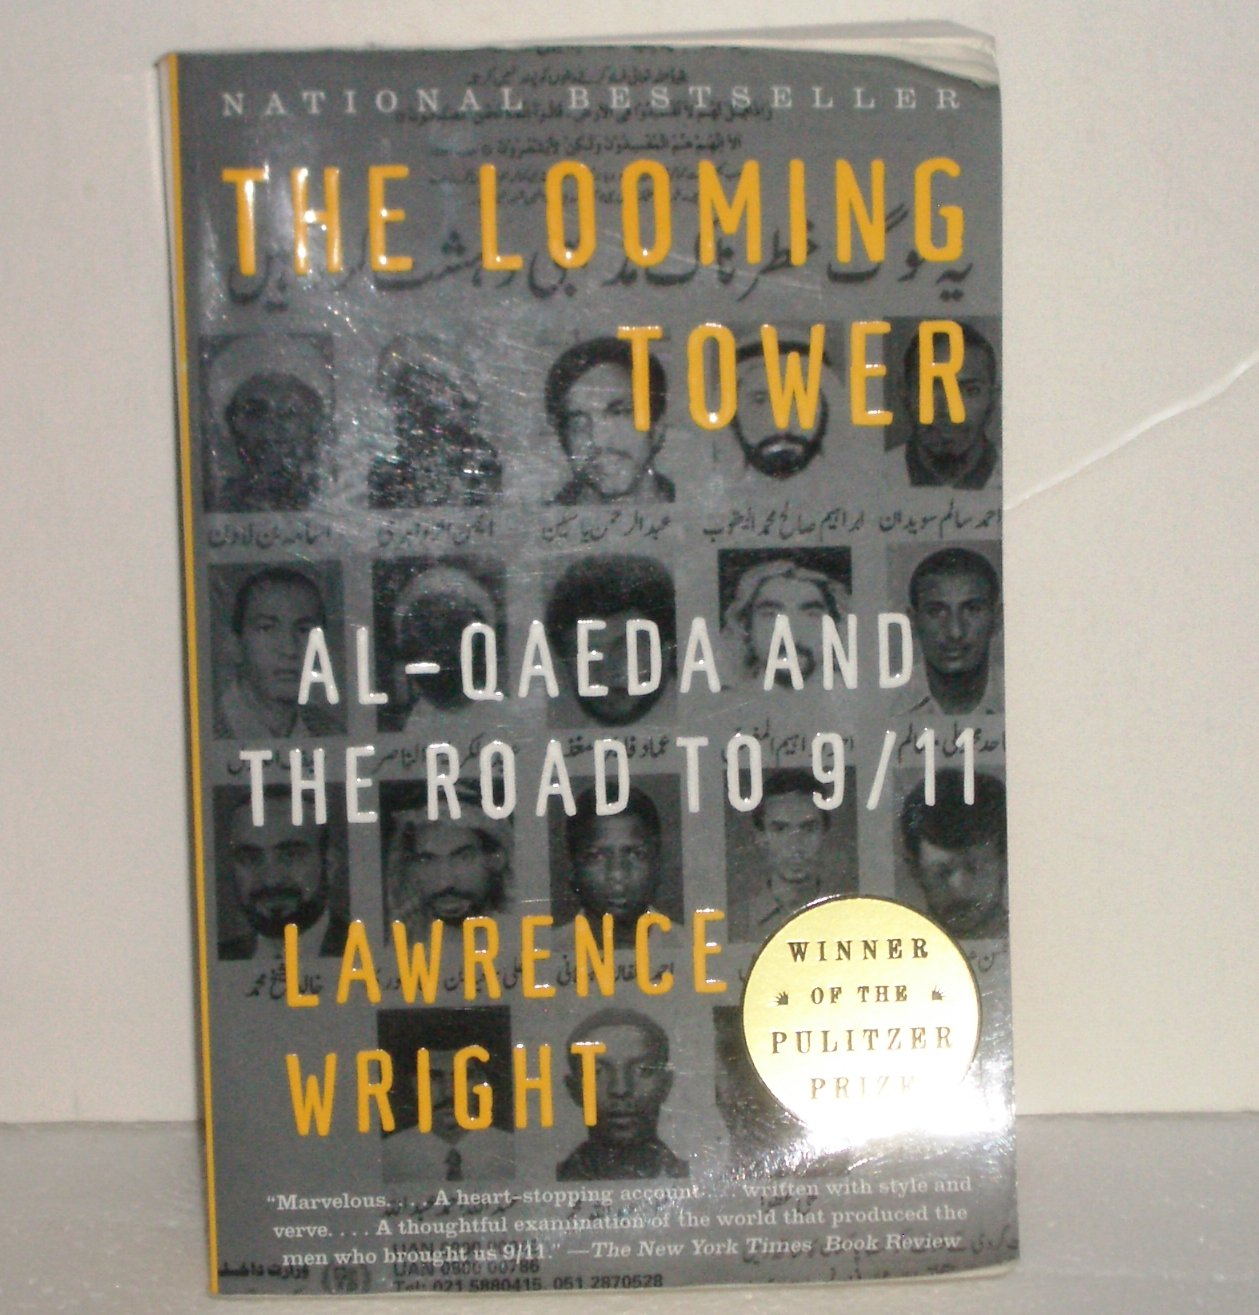 The Looming Tower: Al-Qaeda and the Road to 9/11 by Lawrence Wright Trade Paperback 2007